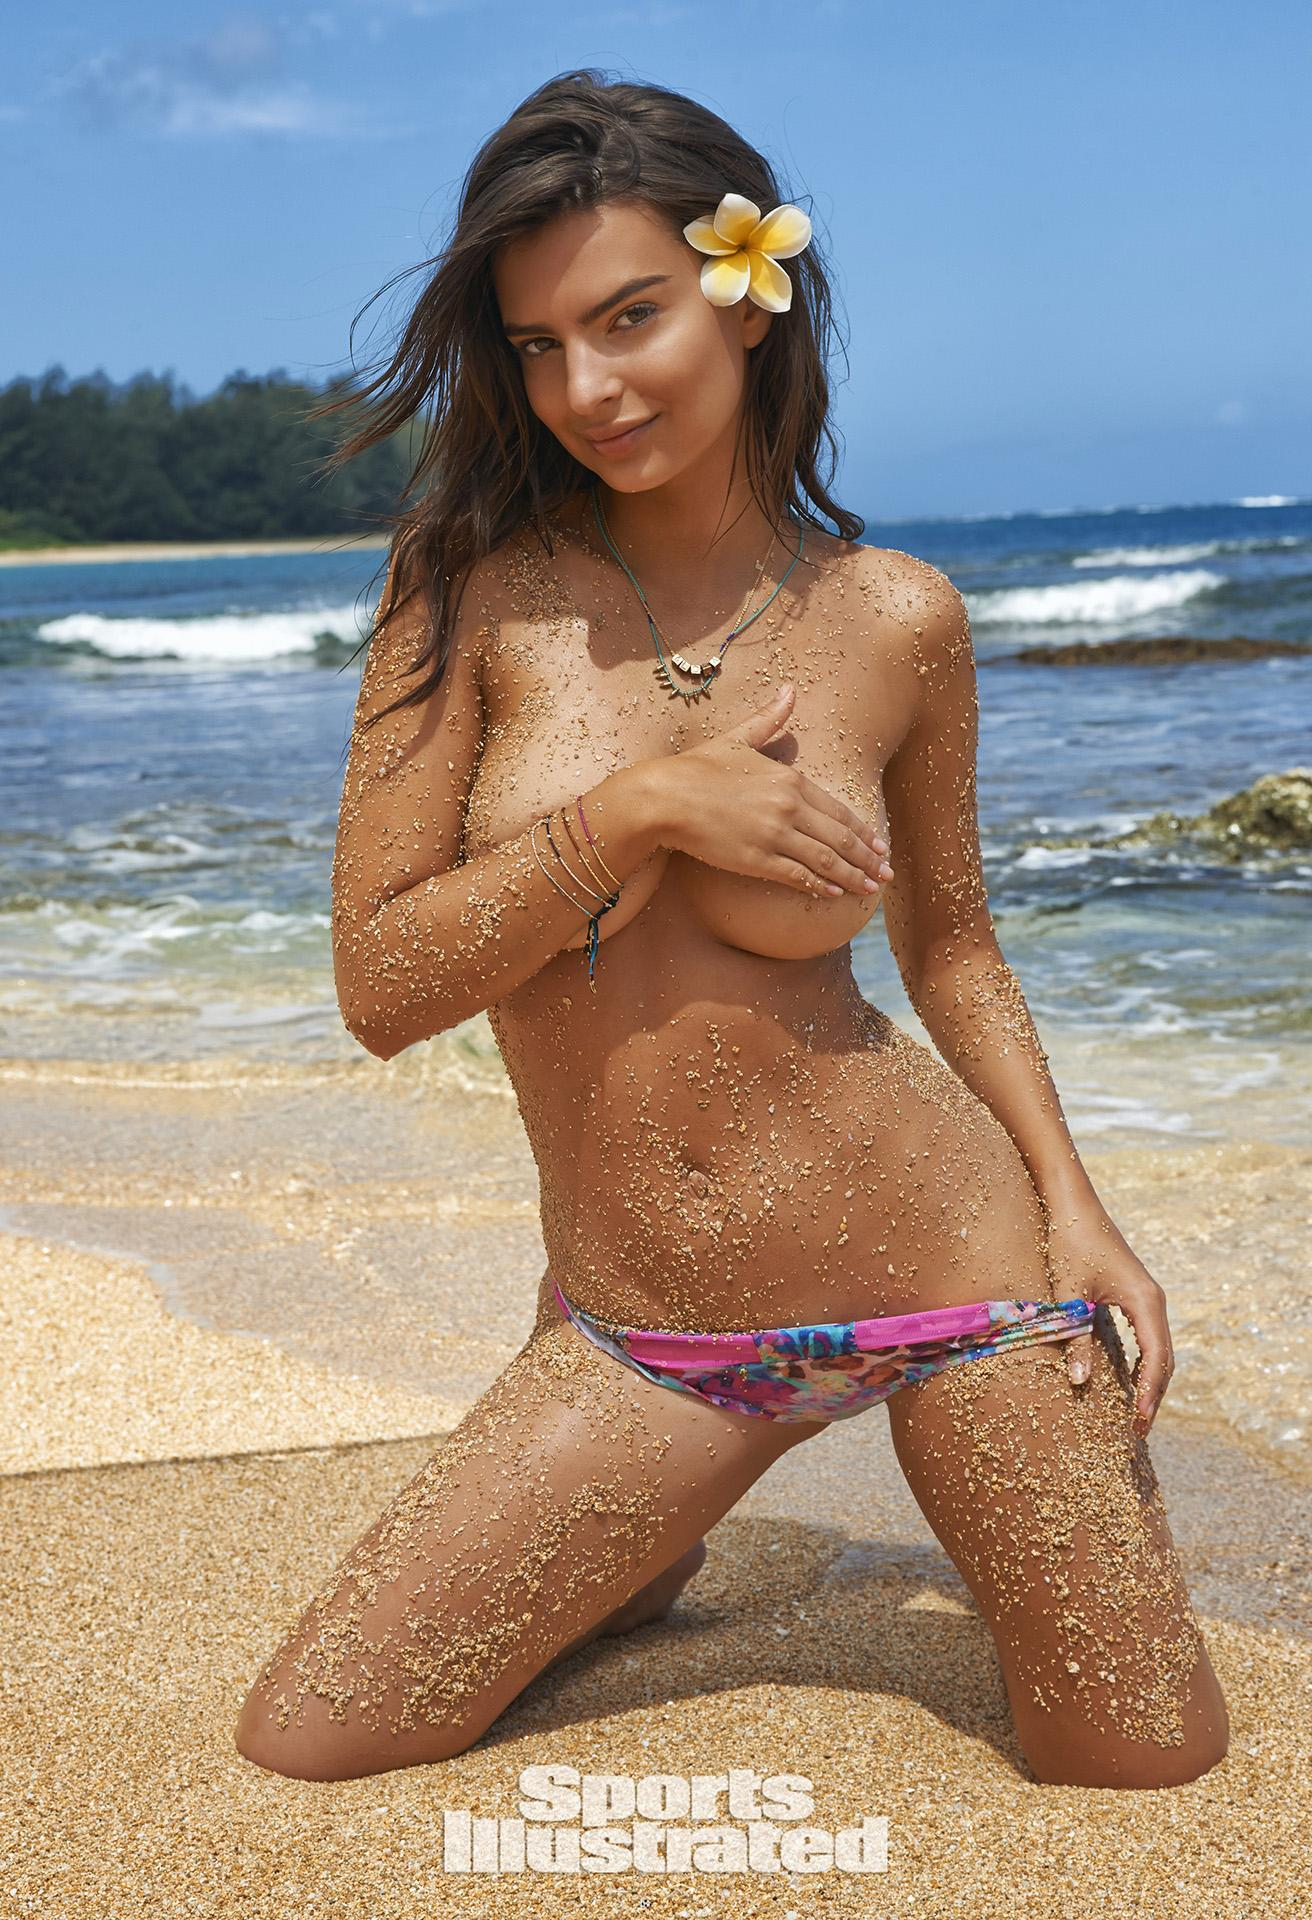 Emily Ratajkowski Swimsuit Photos